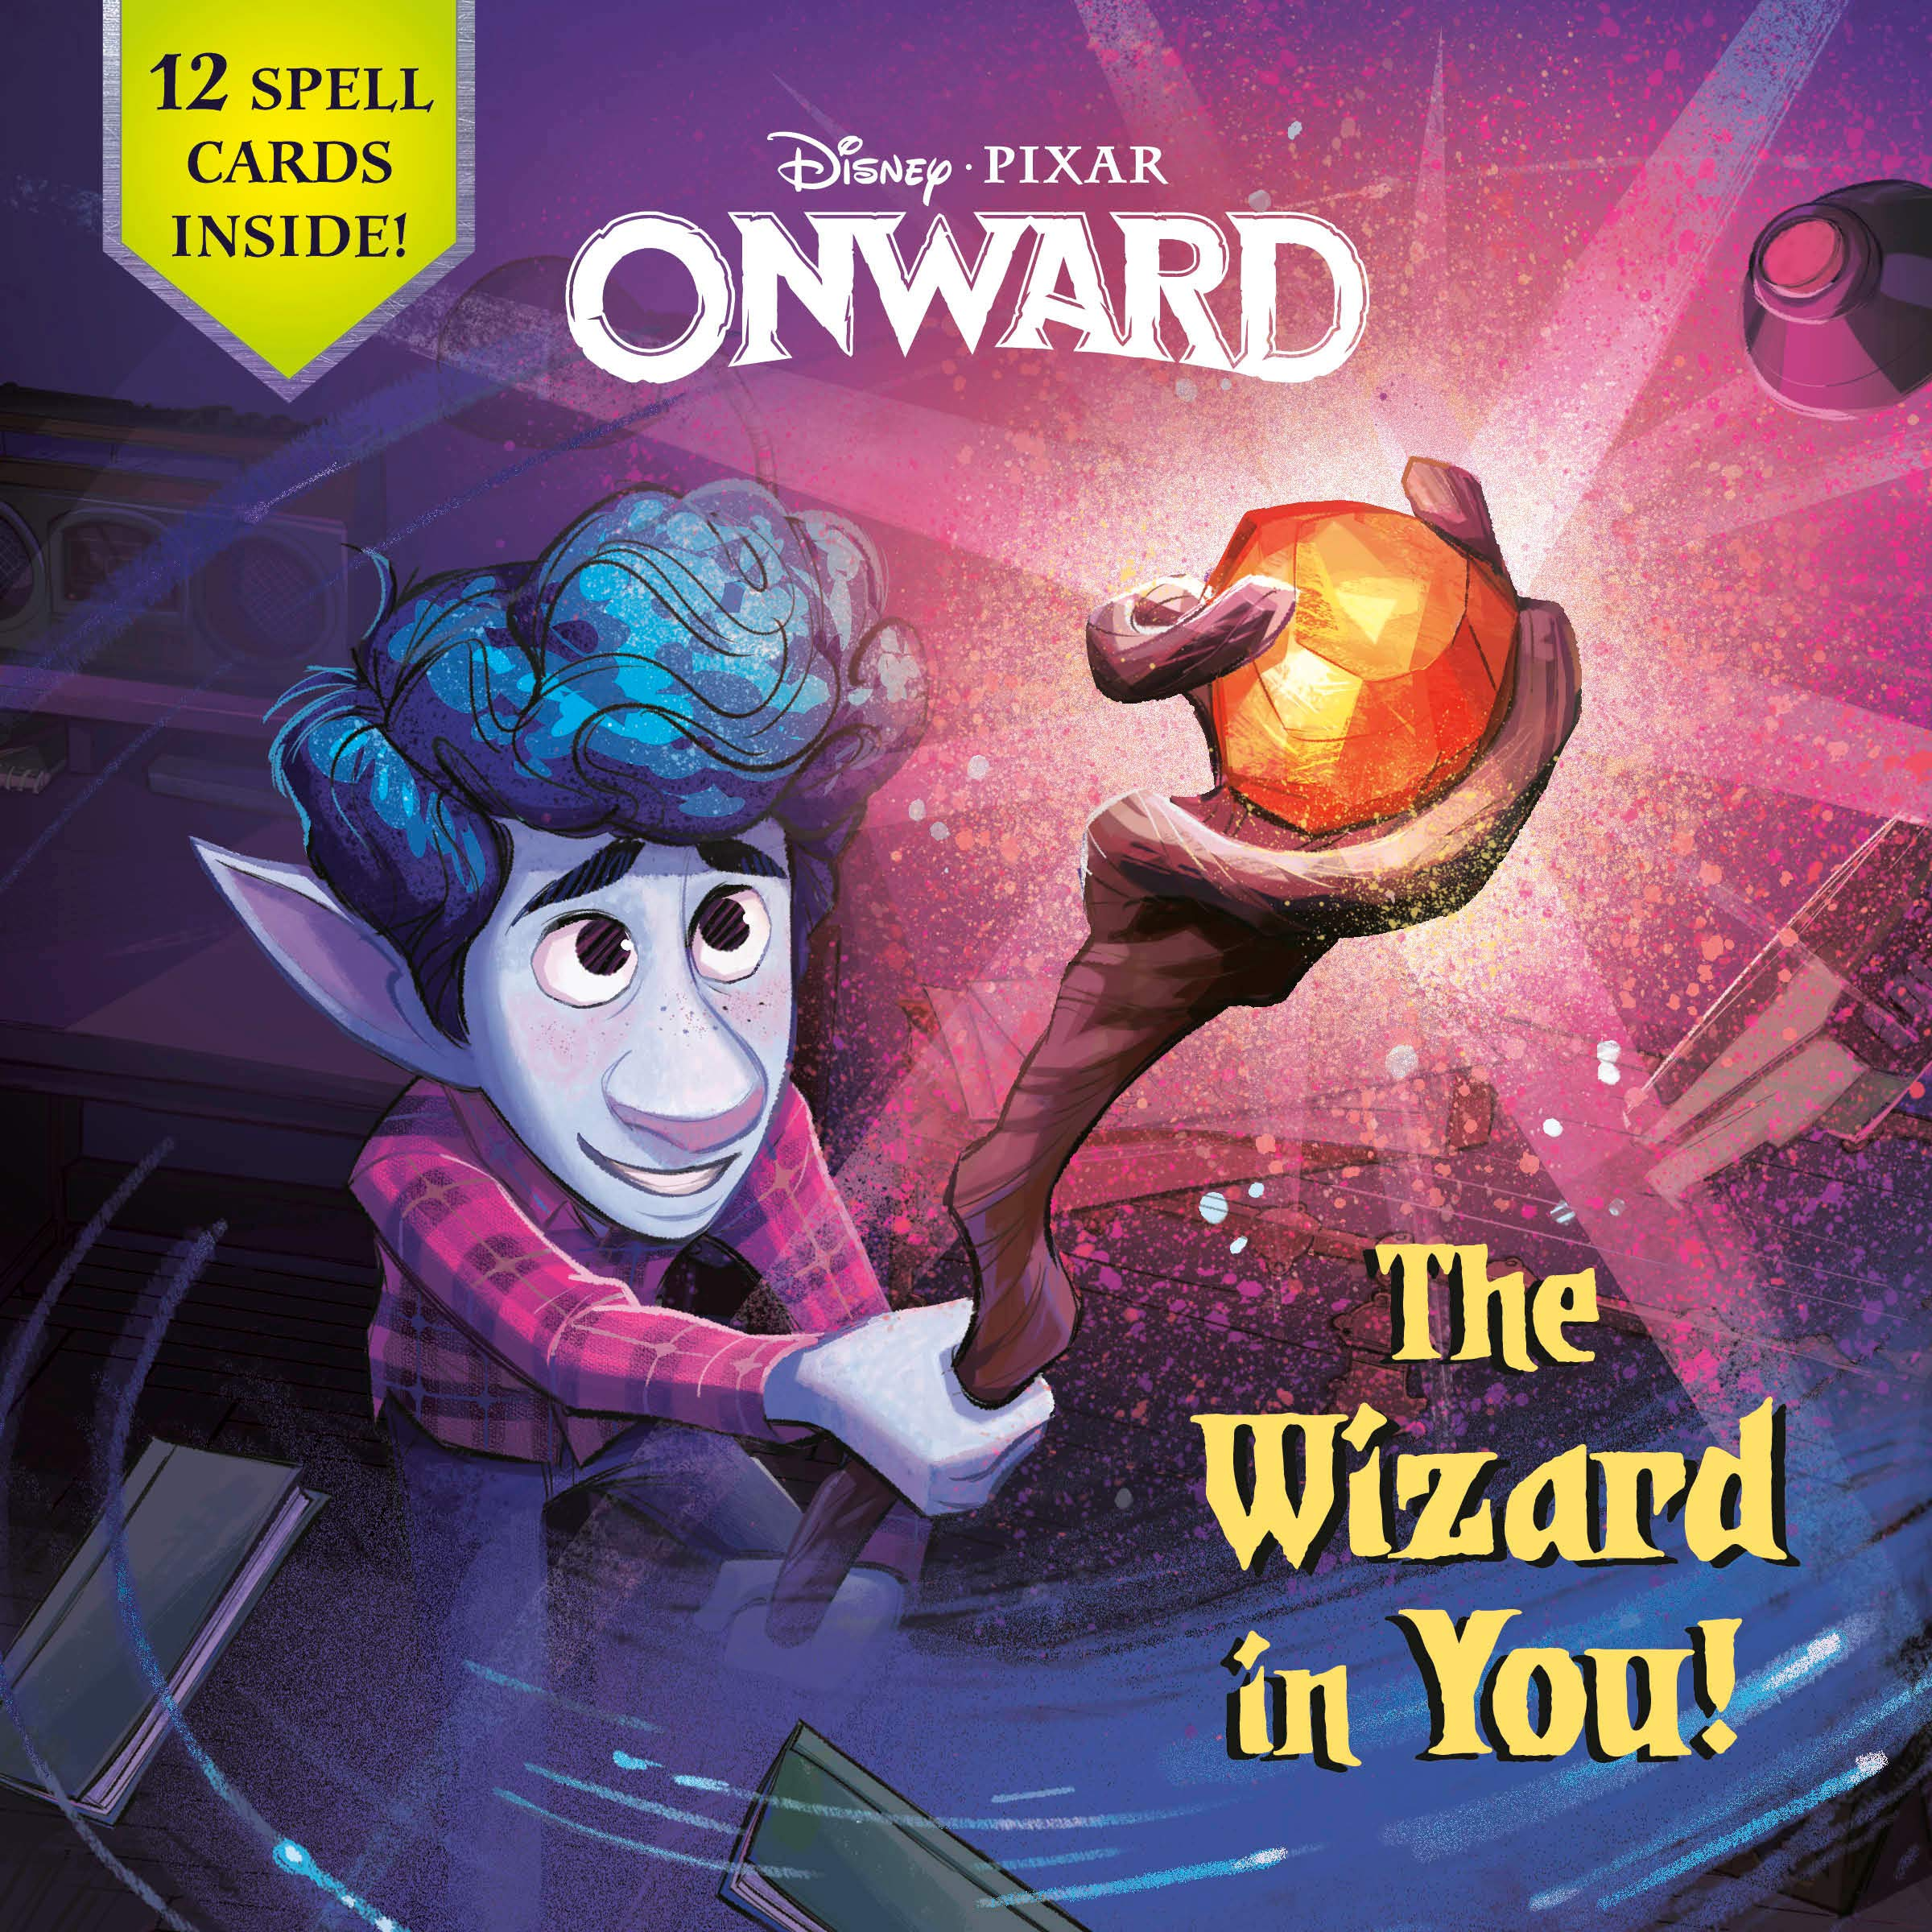 The Wizard in You! (Disney/Pixar Onward) (Pictureback(R)): Behling, Steve, Disney Storybook Art Team: 9780736439619: Amazon.com: Books